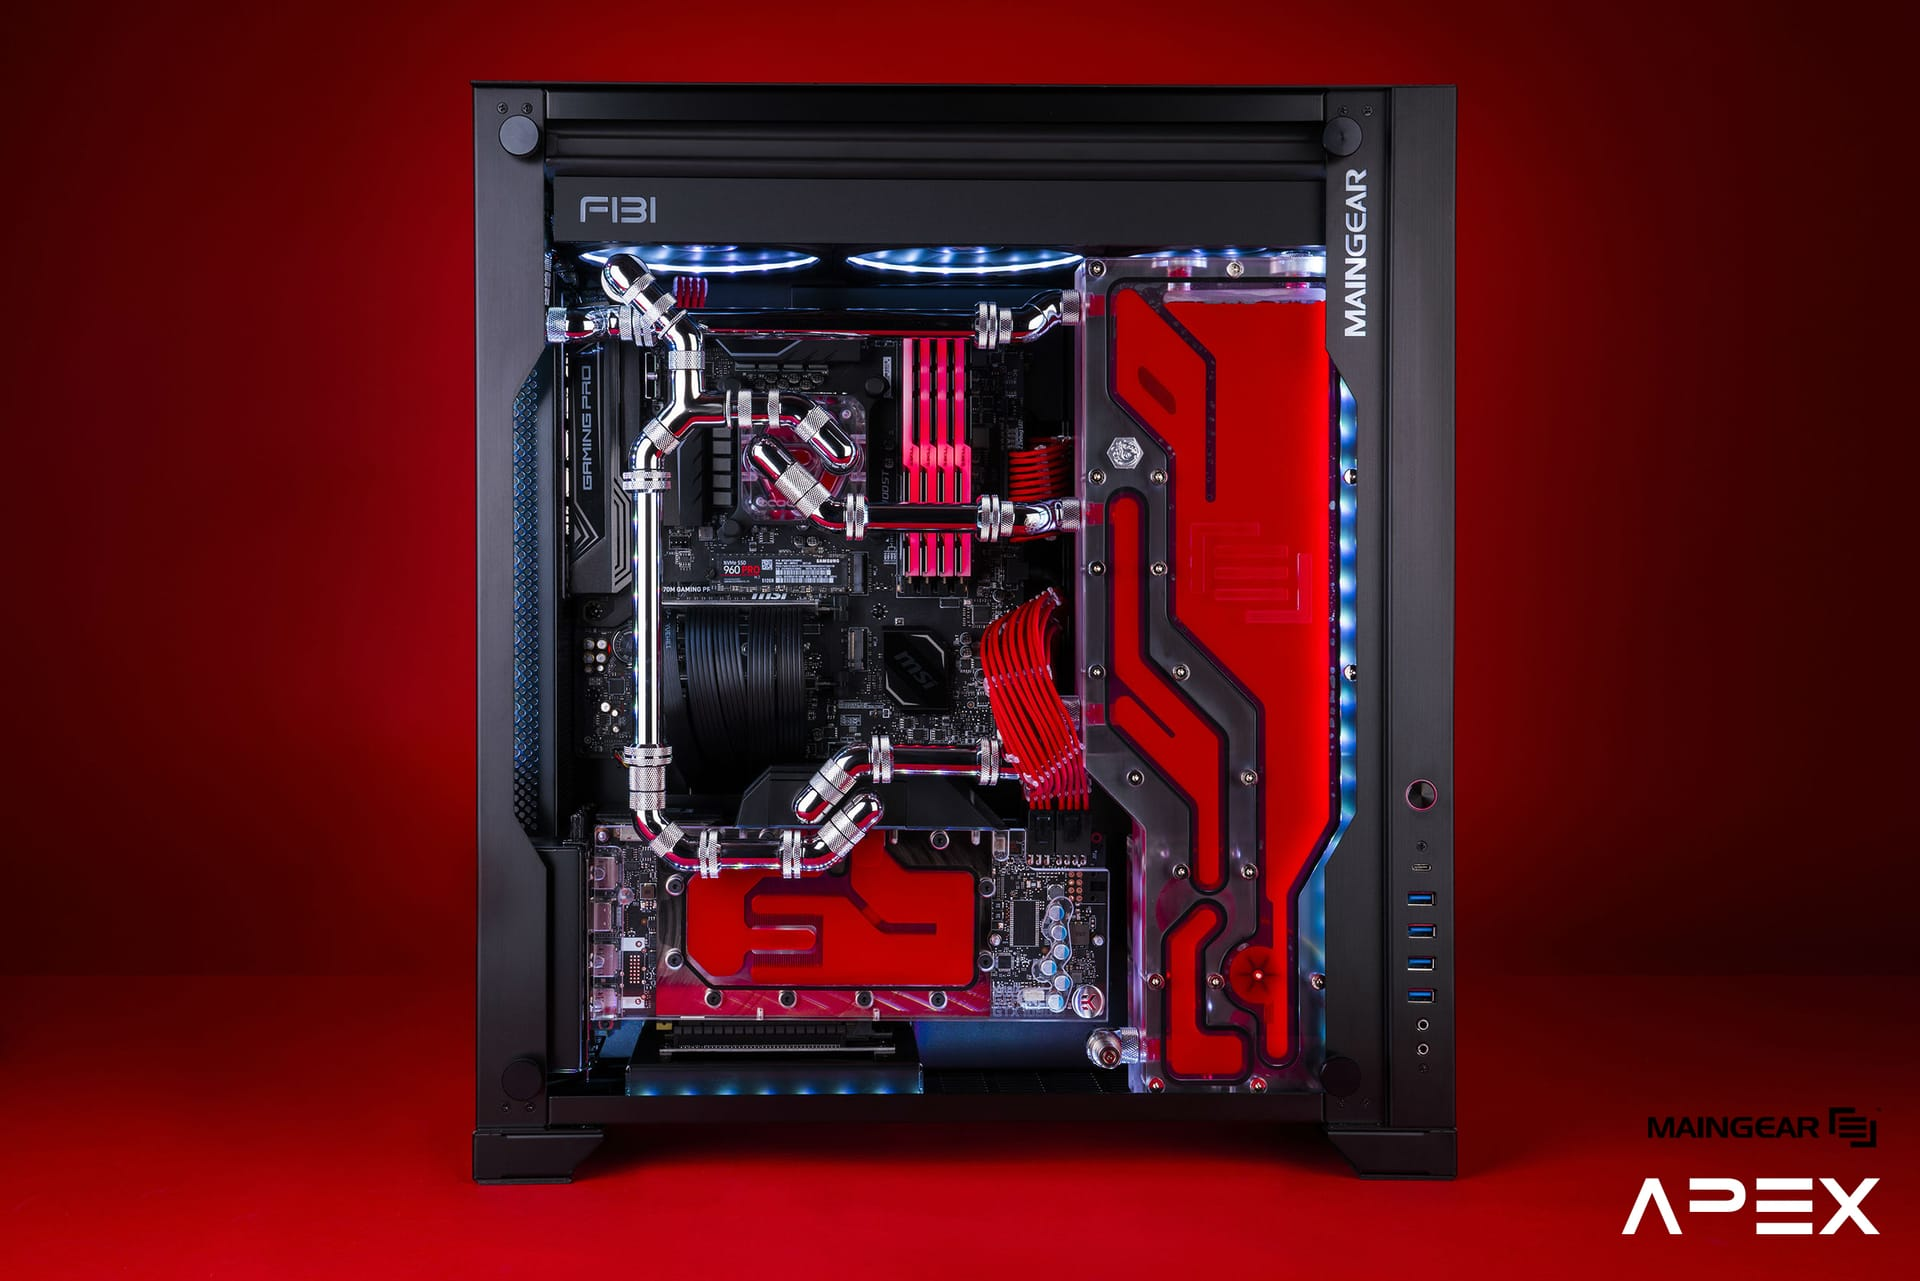 Maingear PC